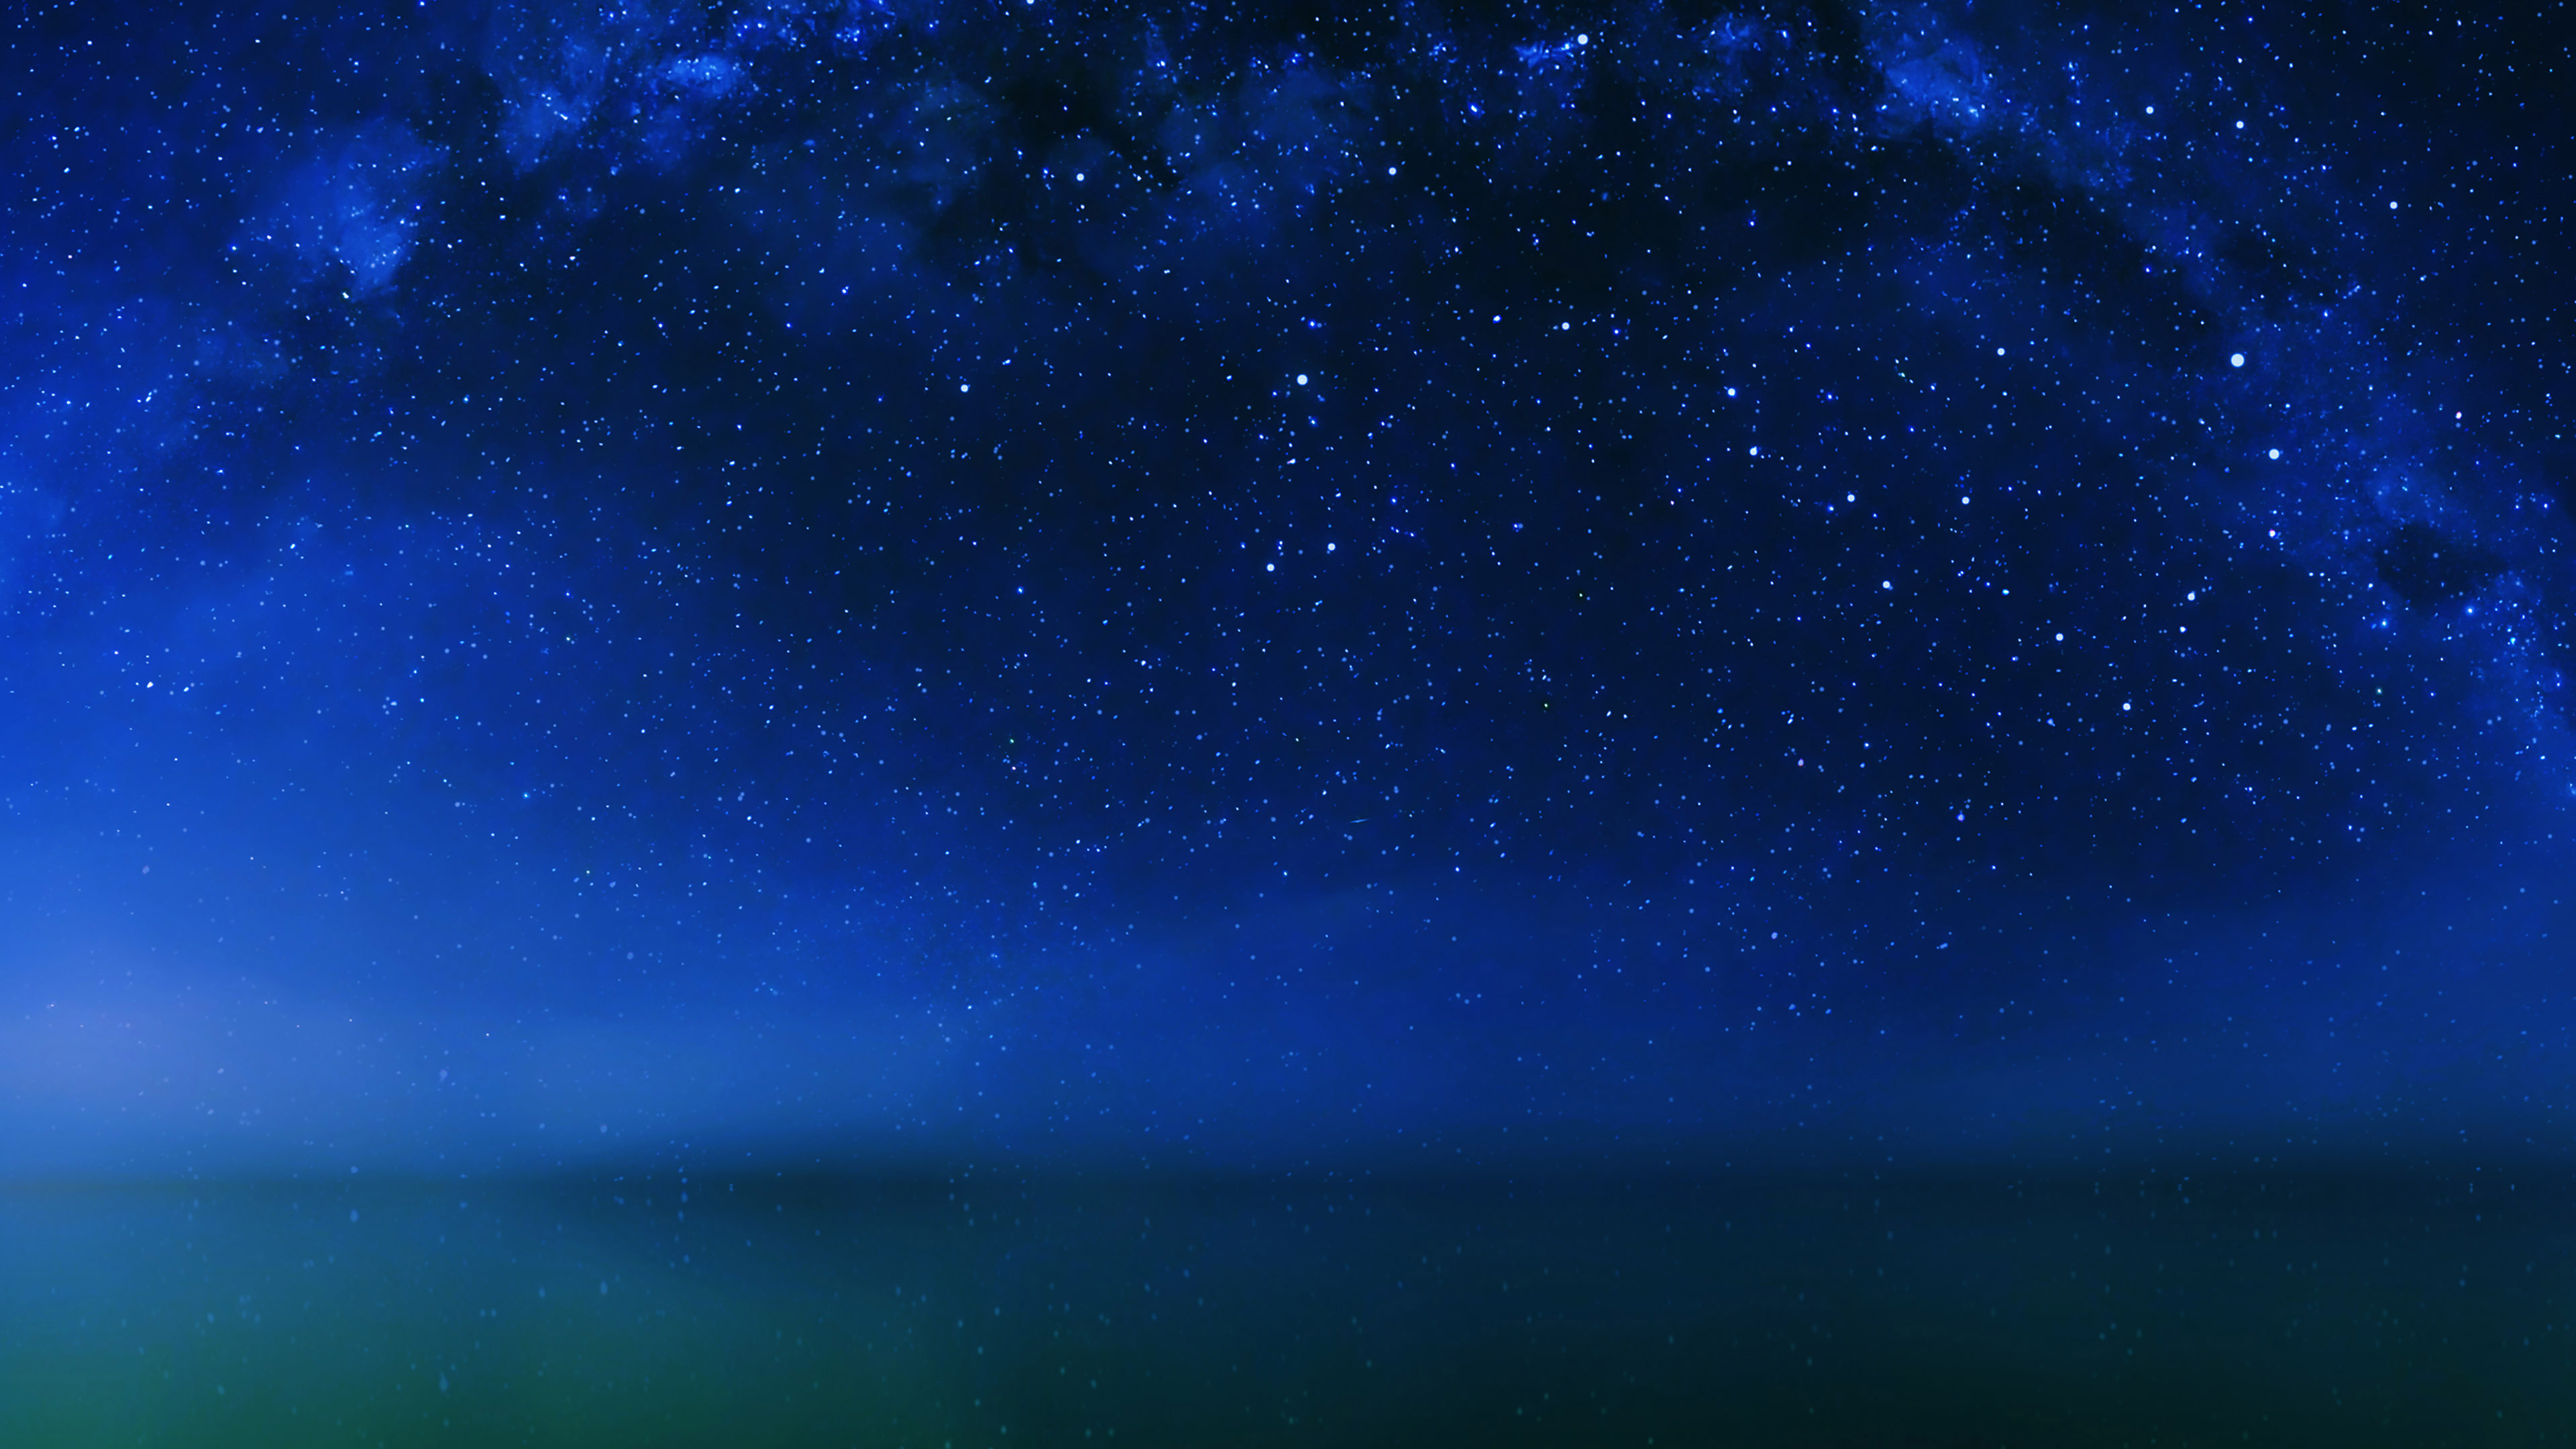 Starry Fall Night Wallpaper Mf28 Cosmos Night Live Lake Space Starry Papers Co